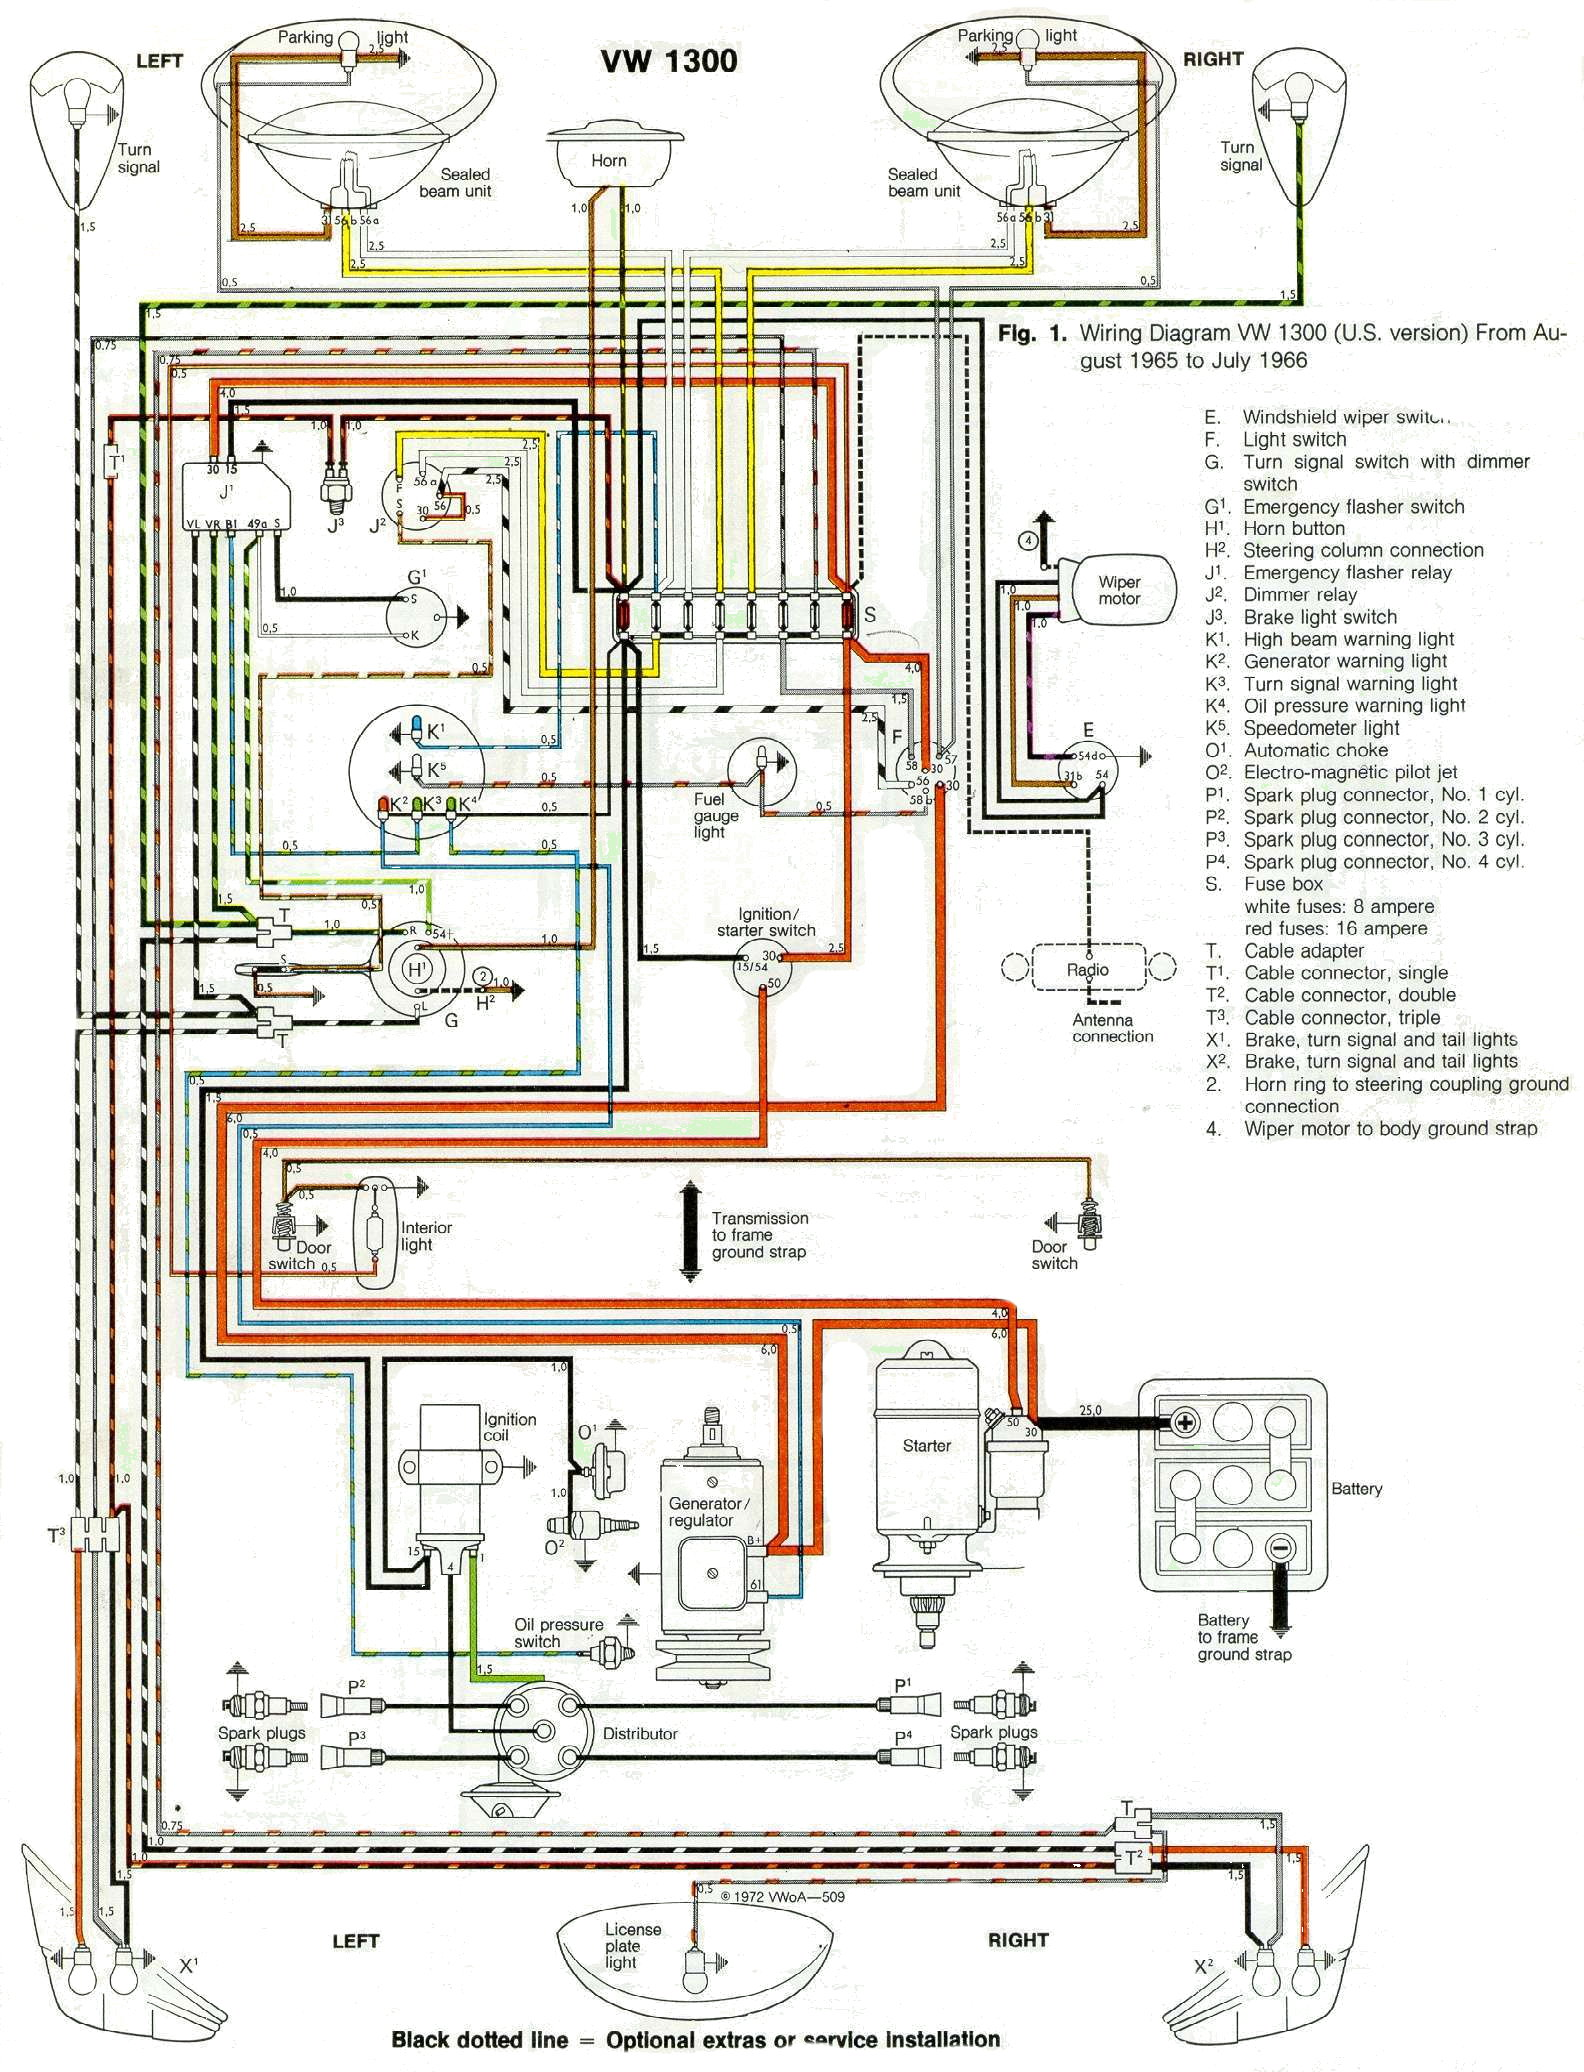 1966 Wiring 1966 wiring diagram vw beetle wiring diagram at creativeand.co